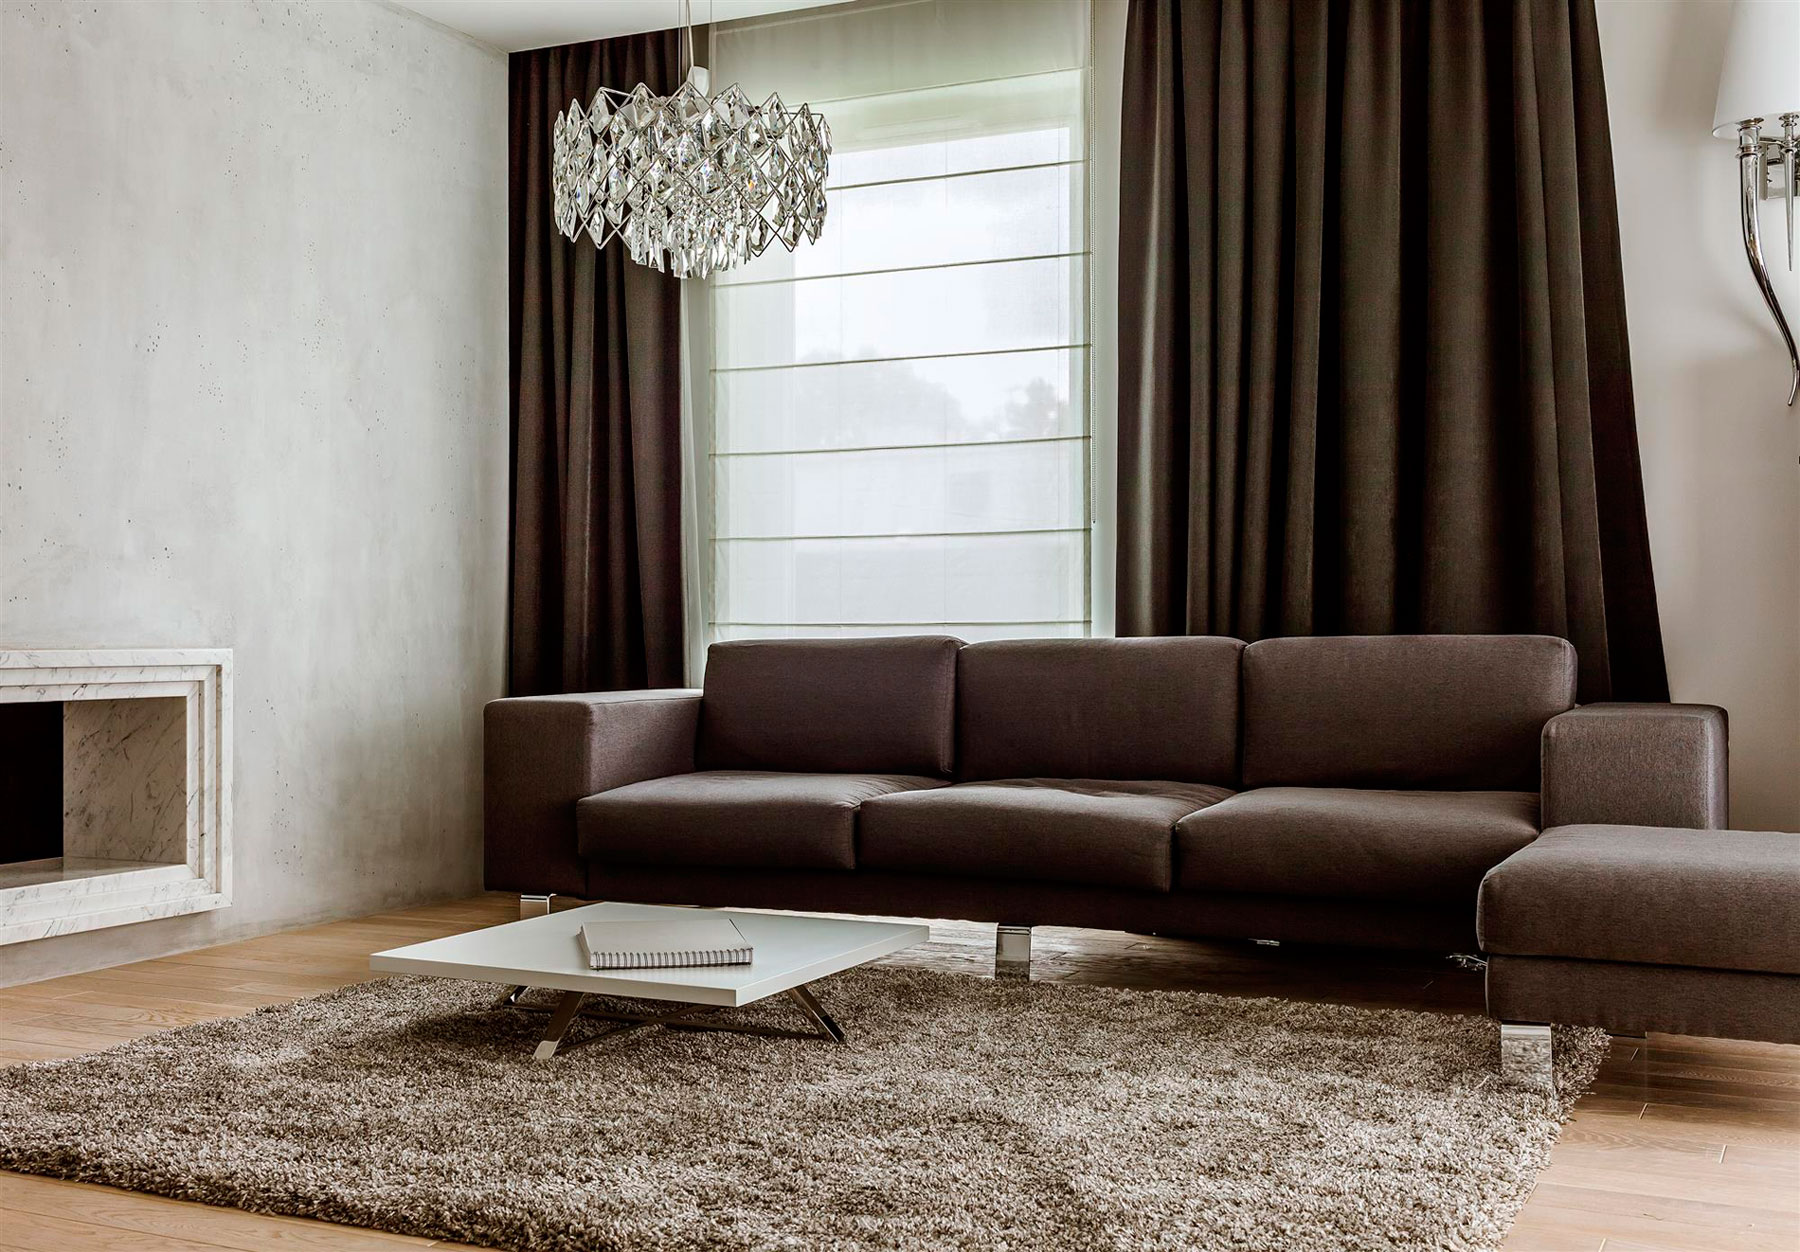 Apartment-in-Warsaw-02